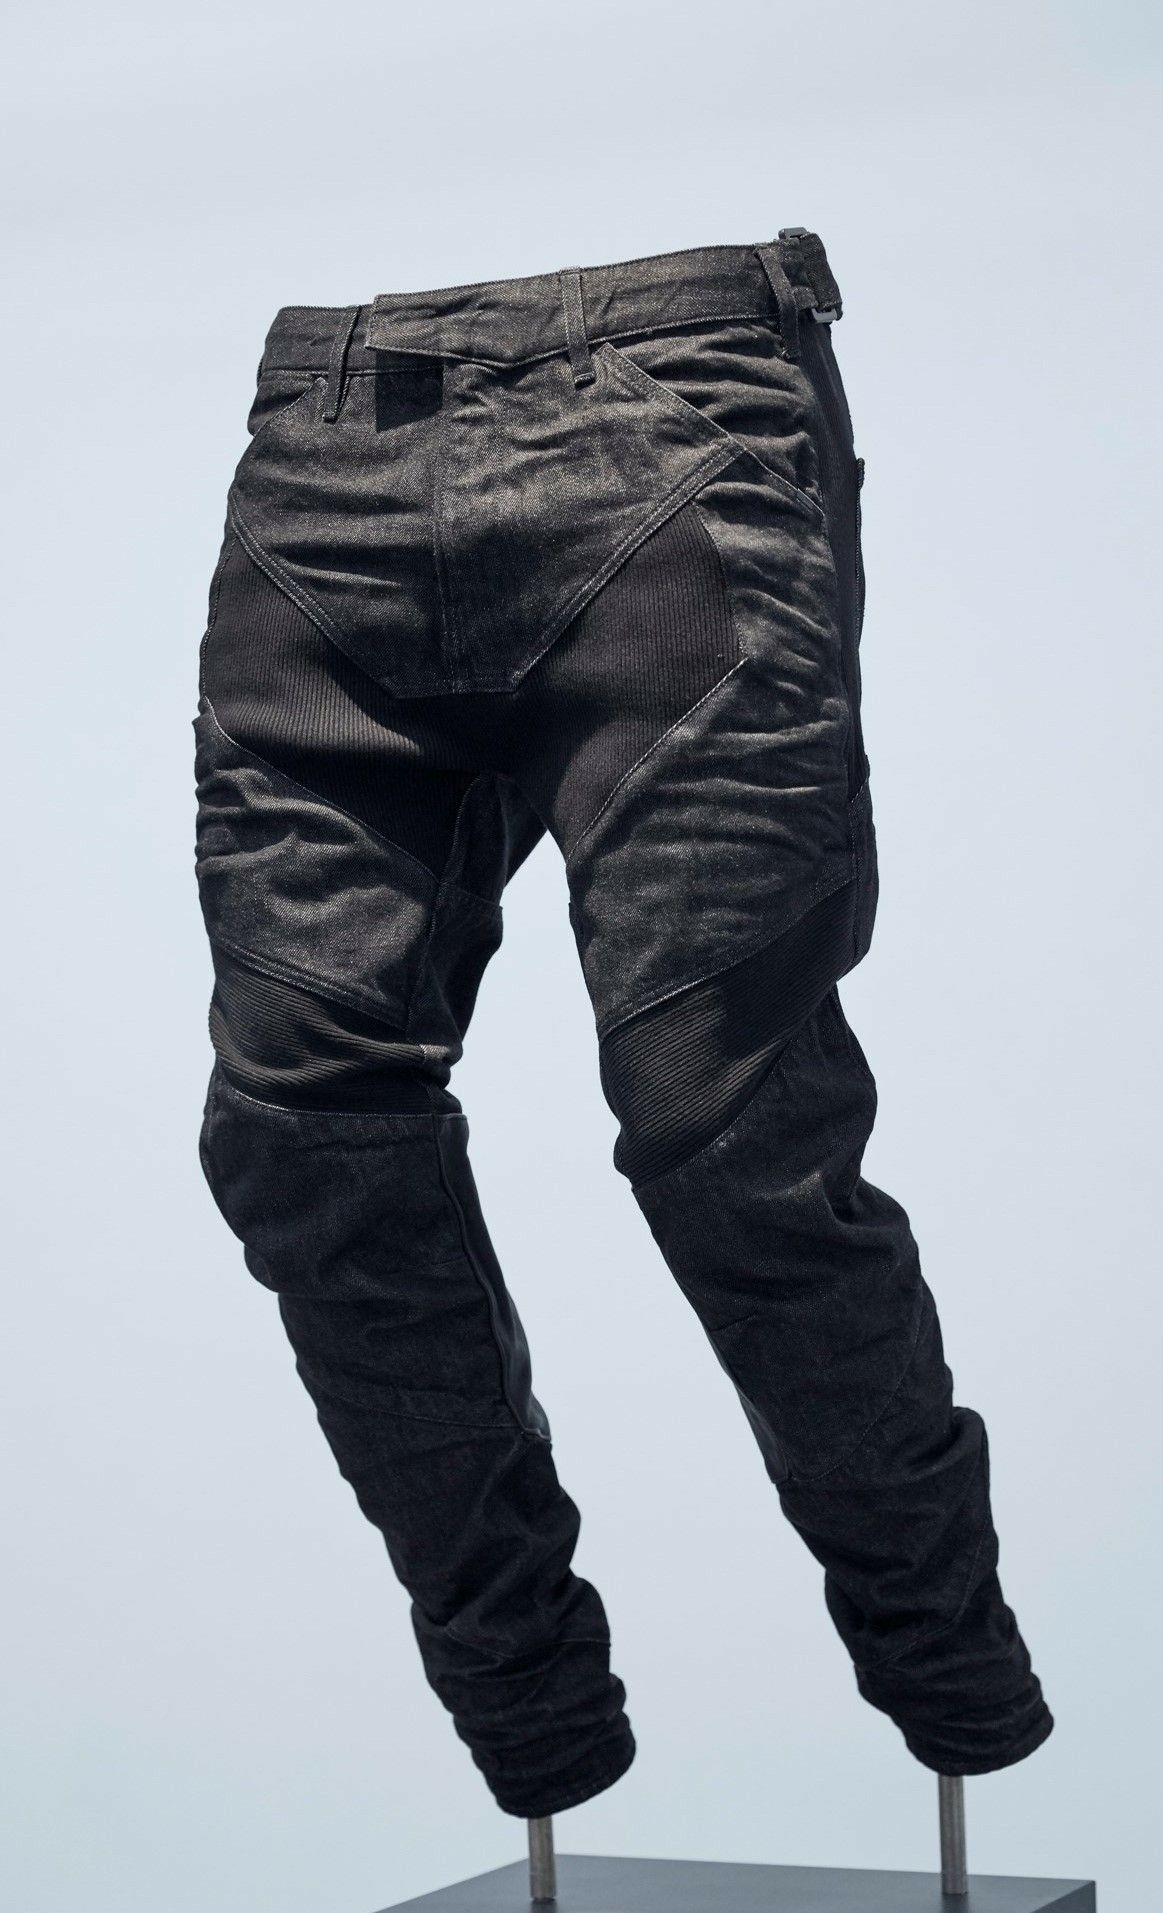 Aitor Throup G Star Raw Research II | Mens pants fashion, G